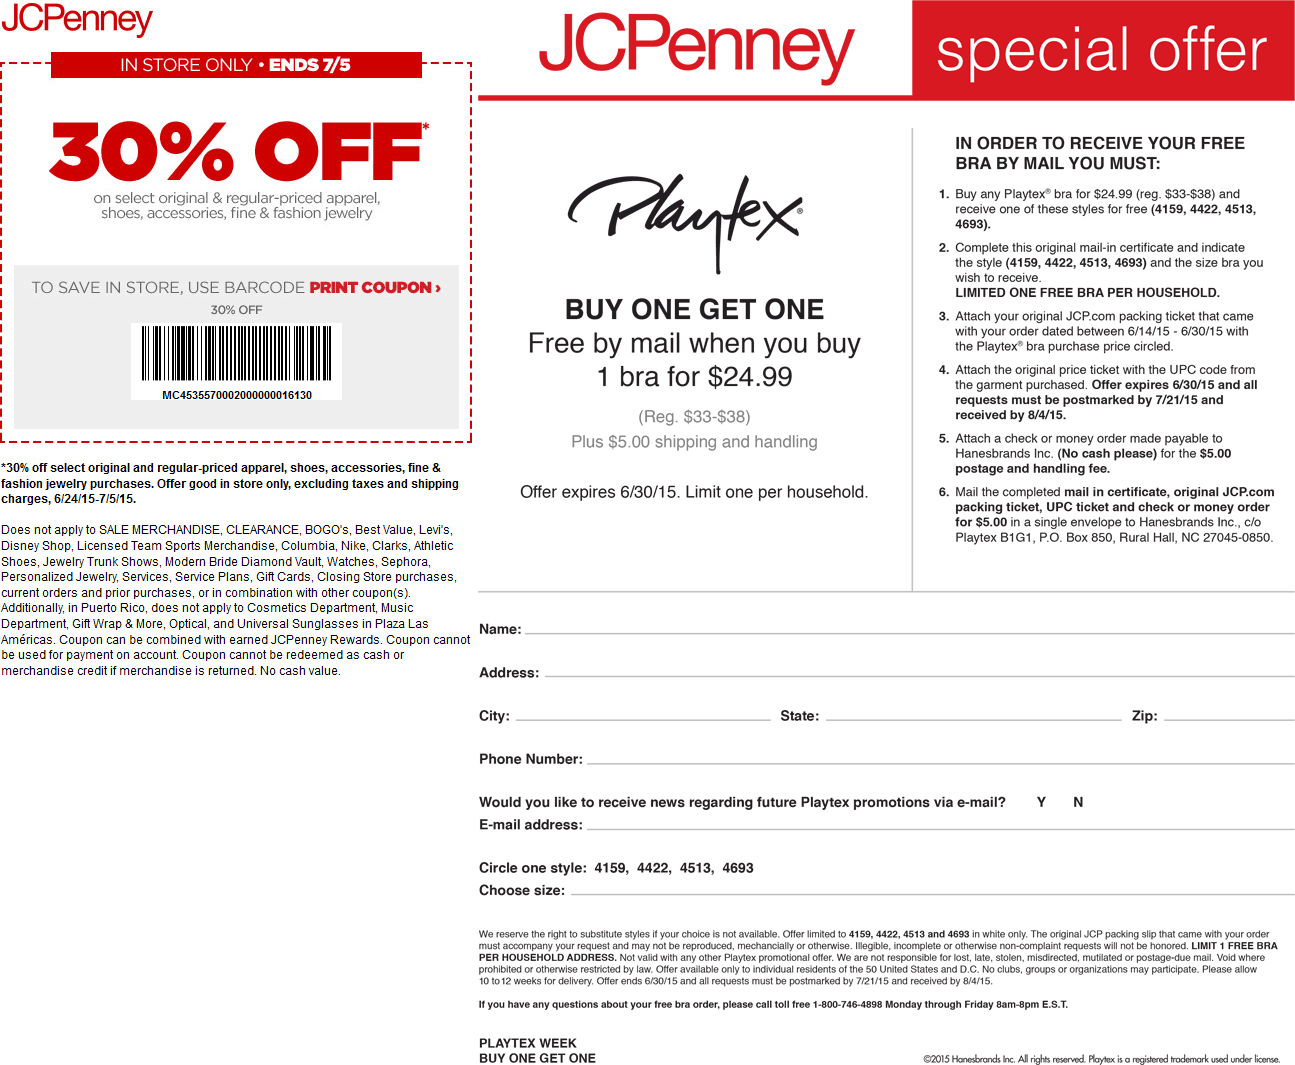 JCPenney Coupon October 2016 30% off at JCPenney - also second bra $5 by mail